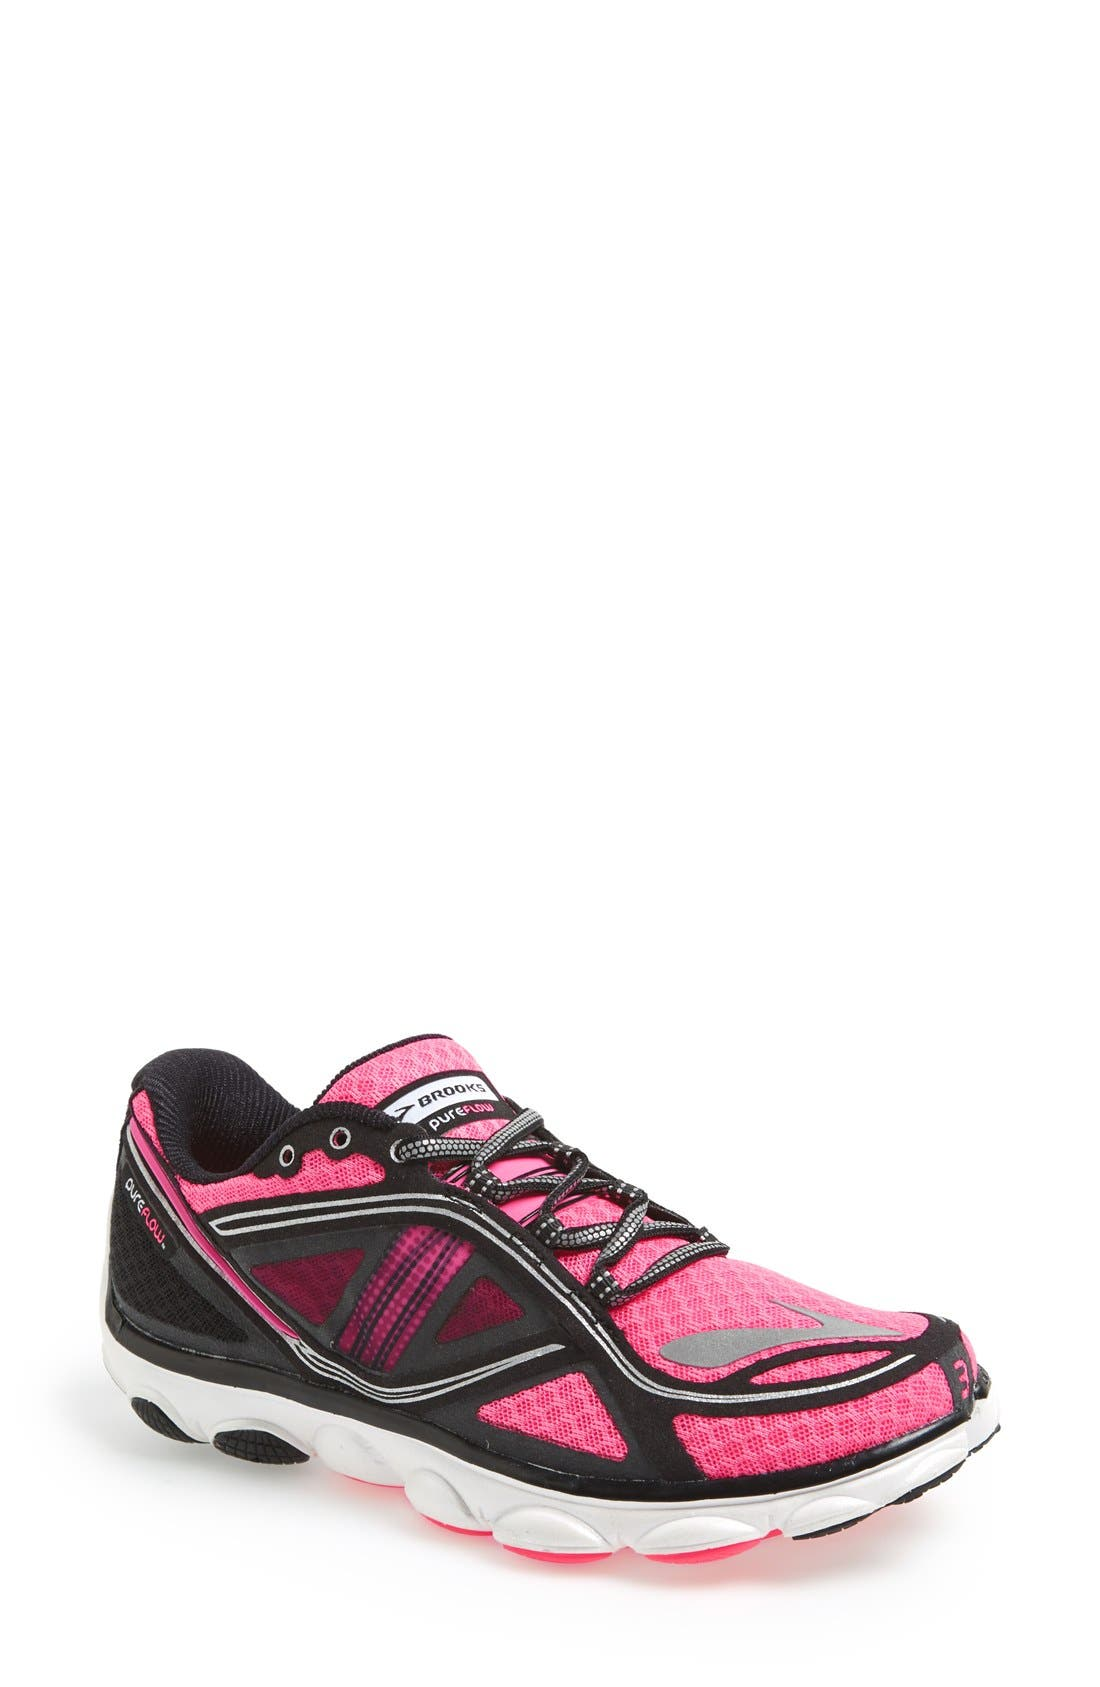 Main Image - Brooks 'Pureflow 3' Running Shoe (Women) (Regular Retail Price: $104.95)